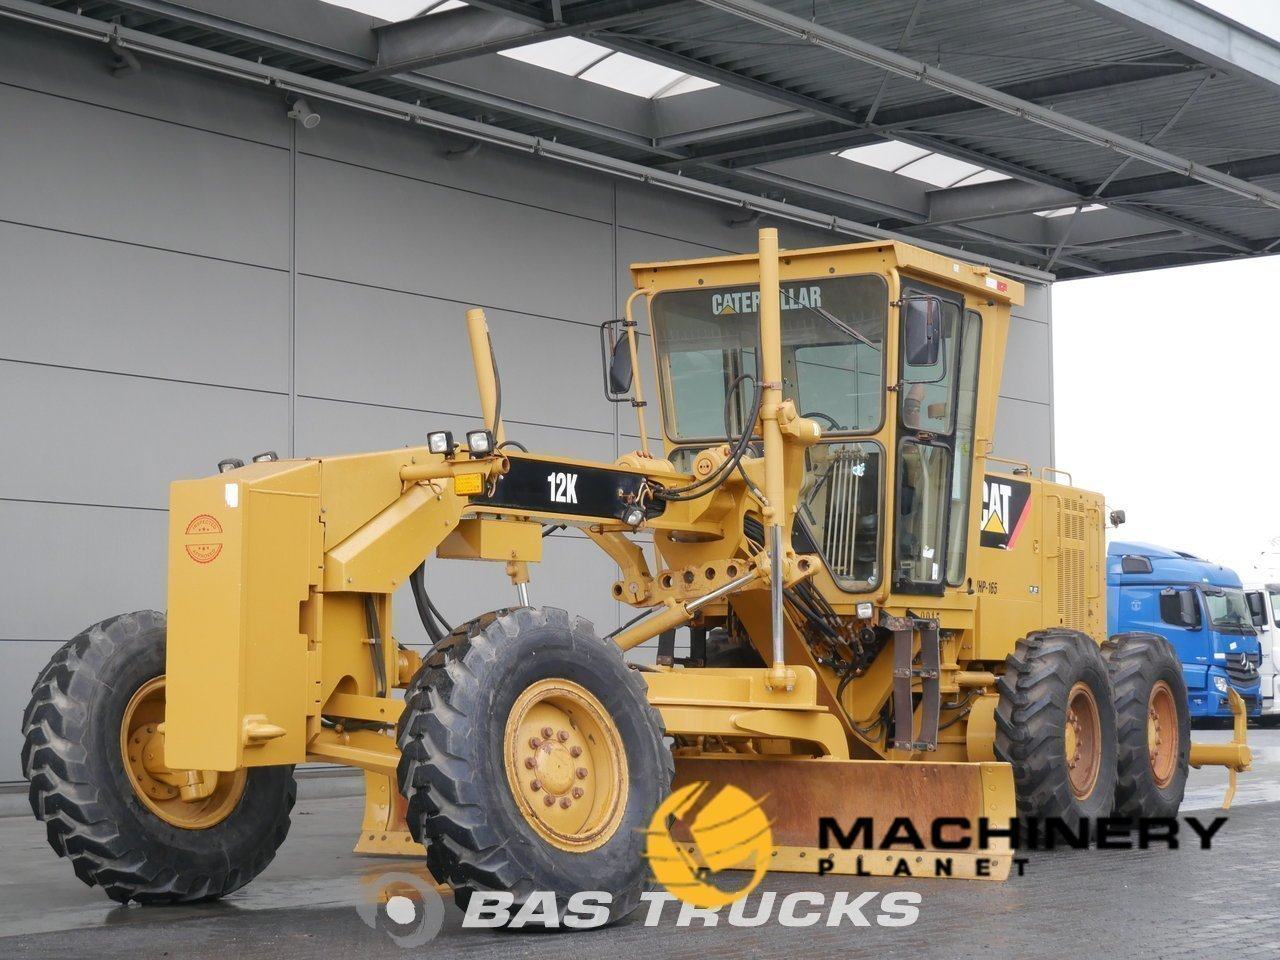 Used-Construction-equipment-Caterpillar-12K-6X4-2011_138127_1-1553934005454_5c9f26b56ec2e-1.jpg